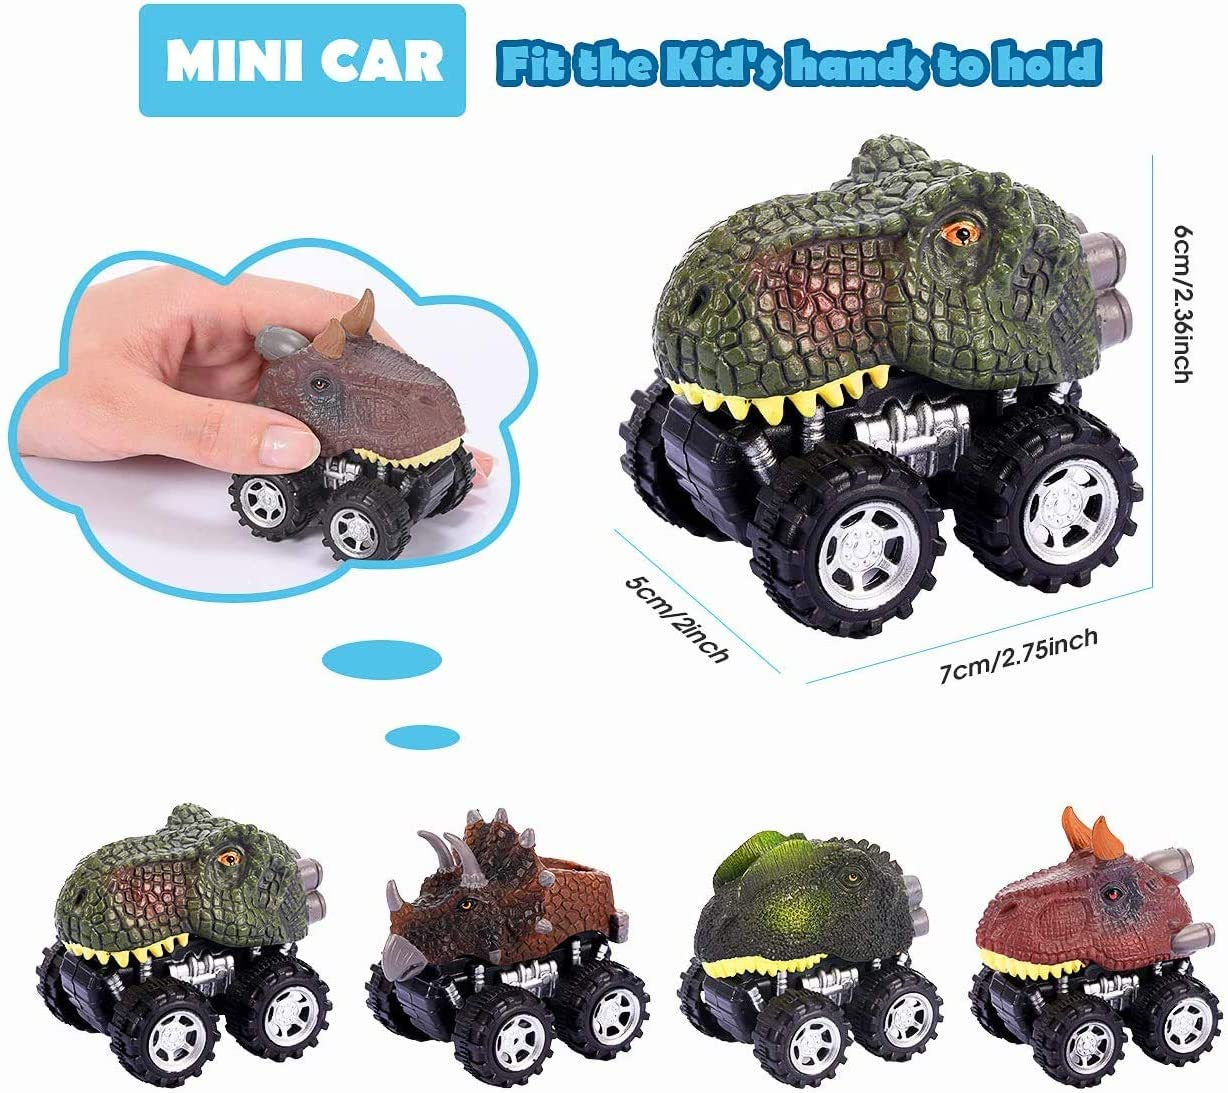 ATOPDREAM Pull Back Dinosaur Cars Best Gifts for Kids